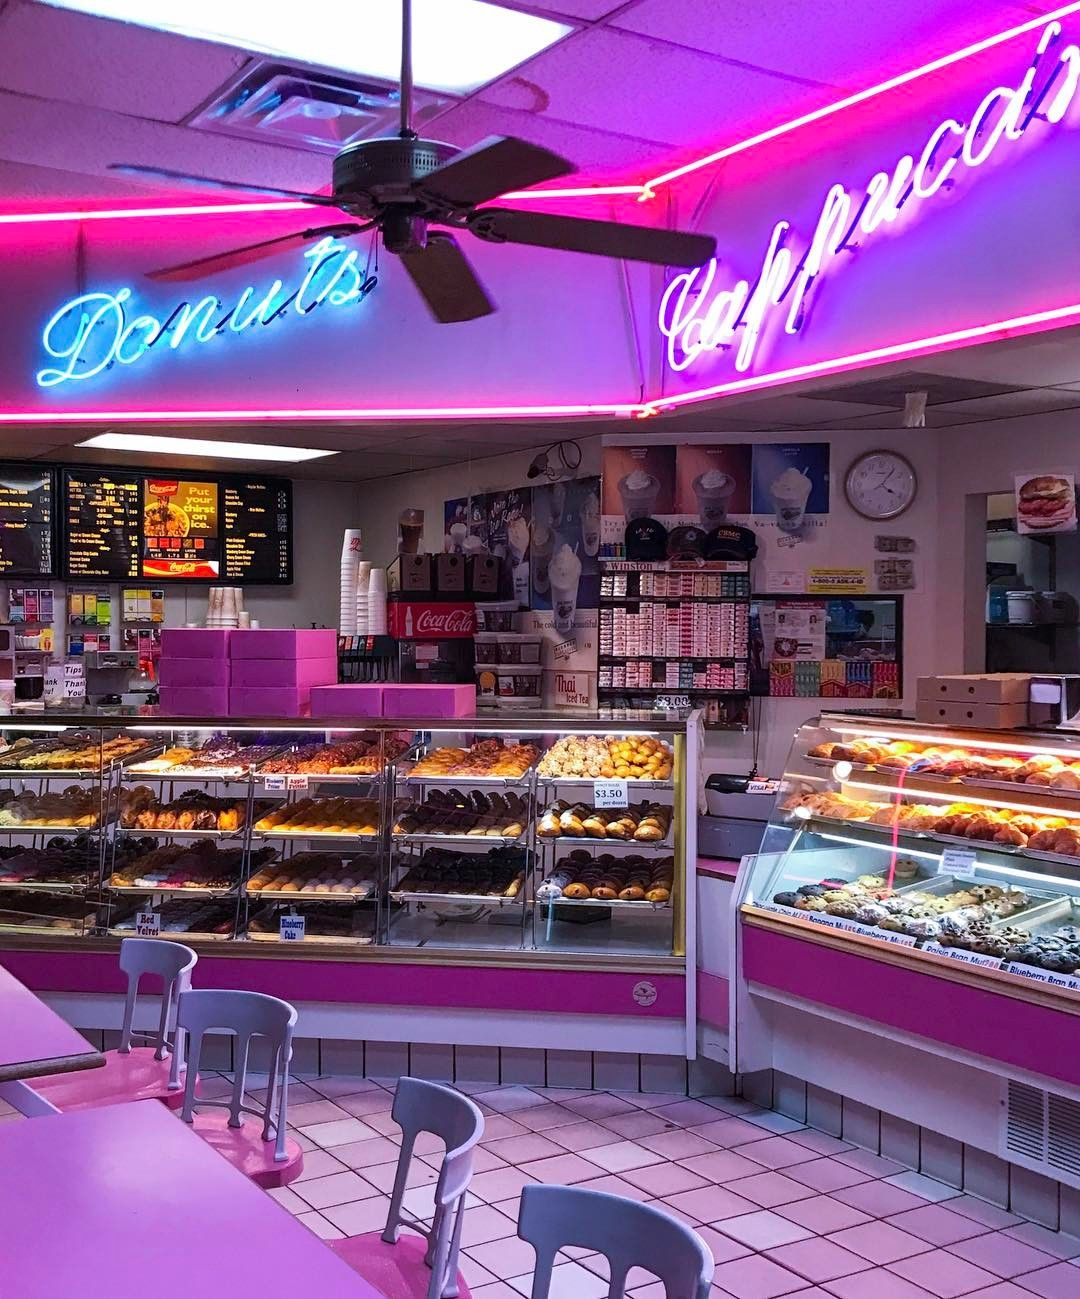 In happier news, I found this beautiful donut shop in the